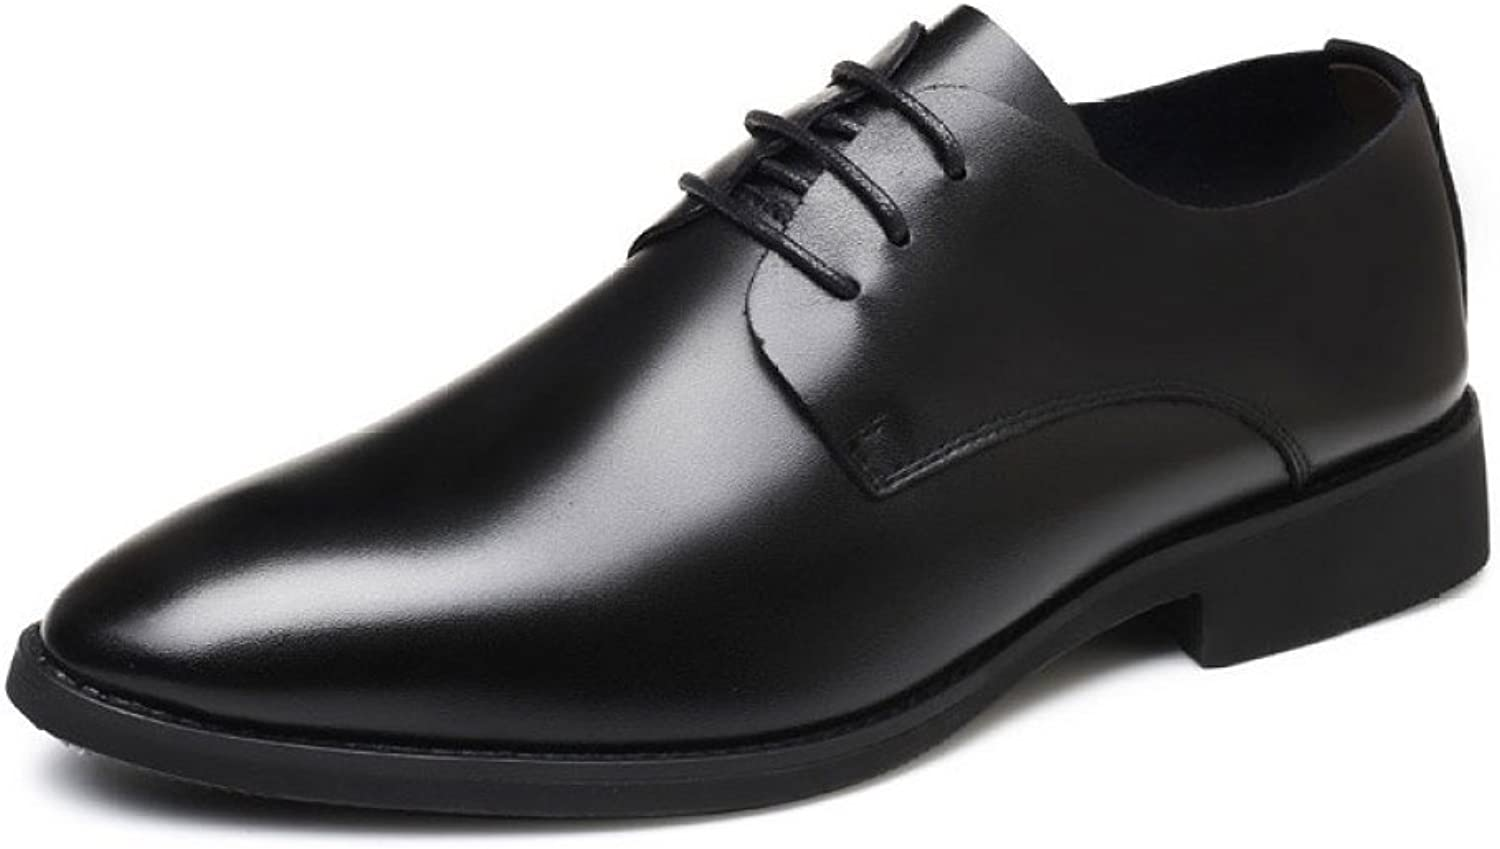 ZLLNSPX Men Pointed Leather shoes Lace-up Business shoes English shoes